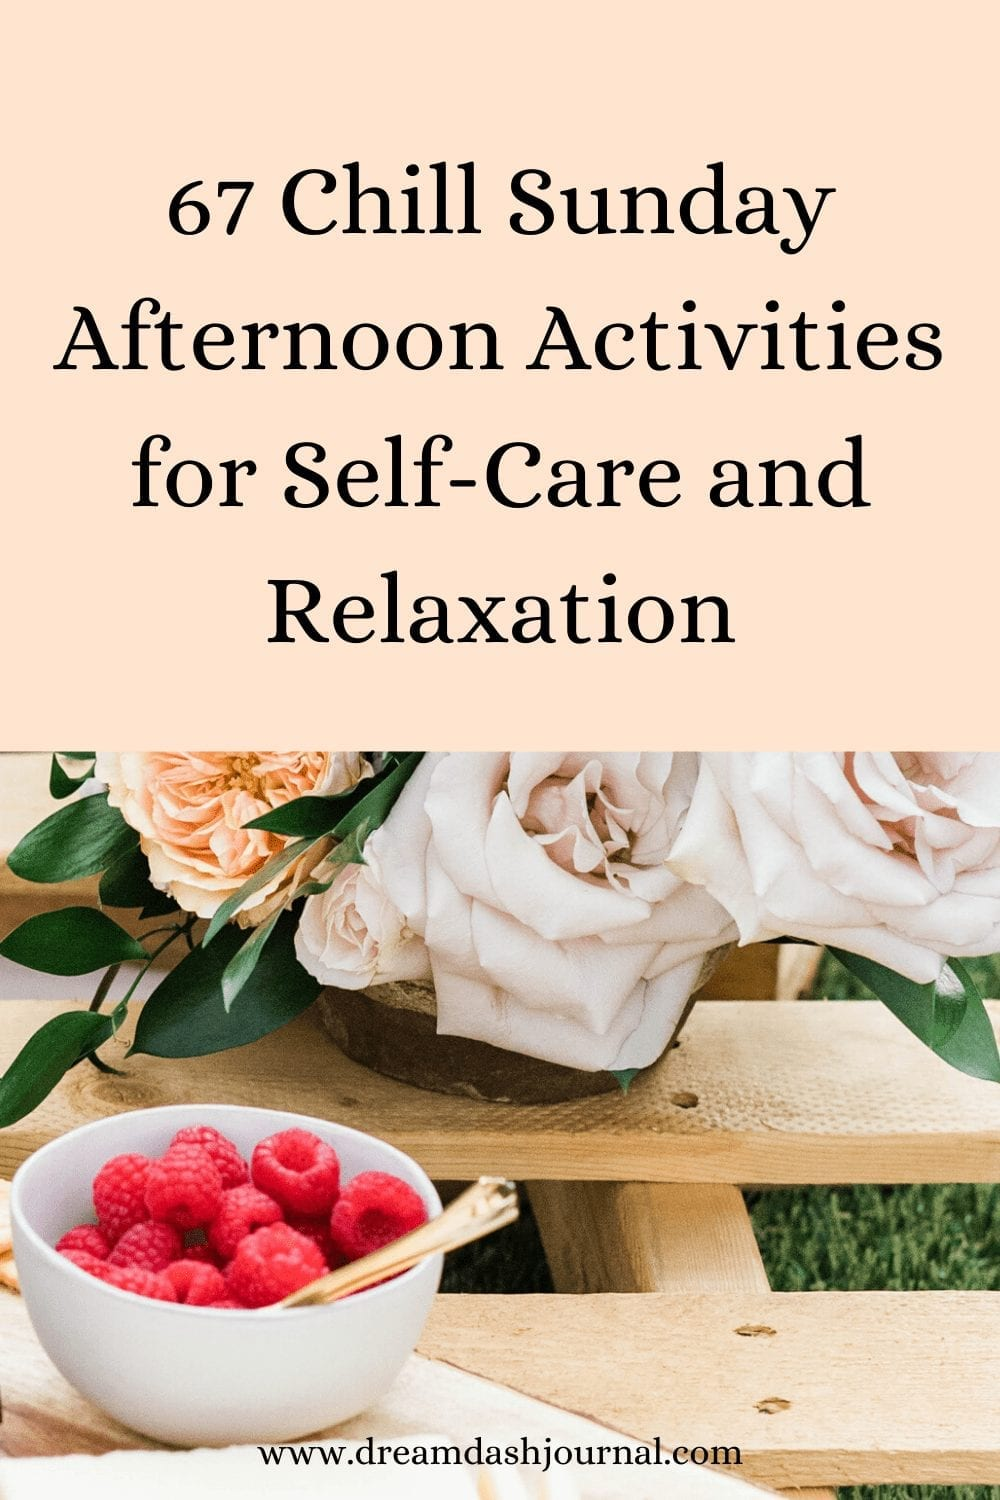 67 Chill Sunday Afternoon Activities for Self-Care and Relaxation